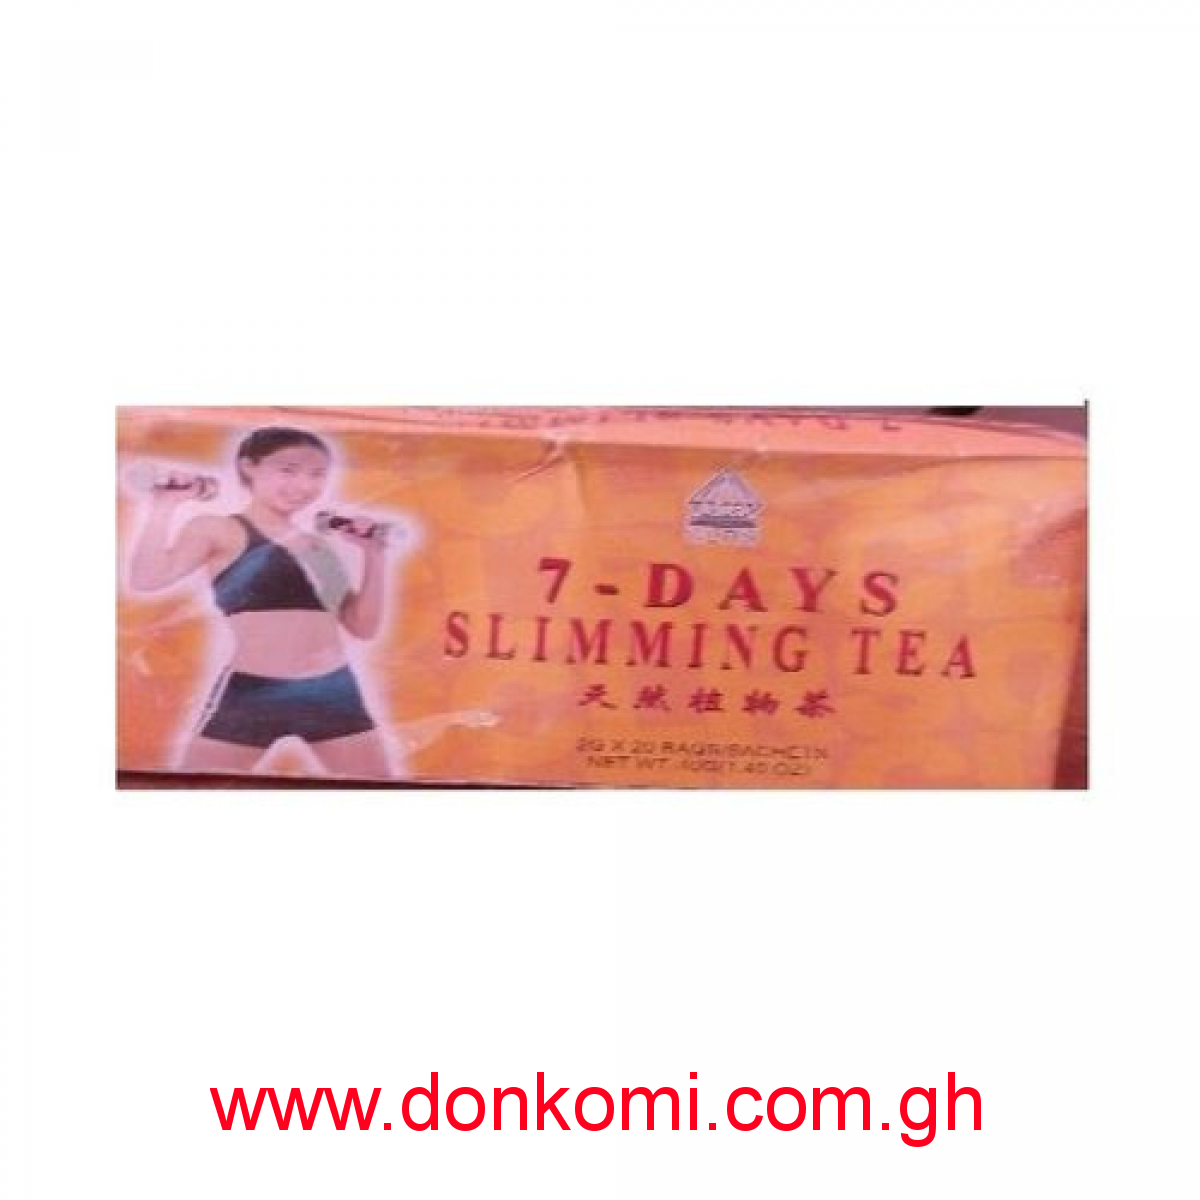 7days slimming tea